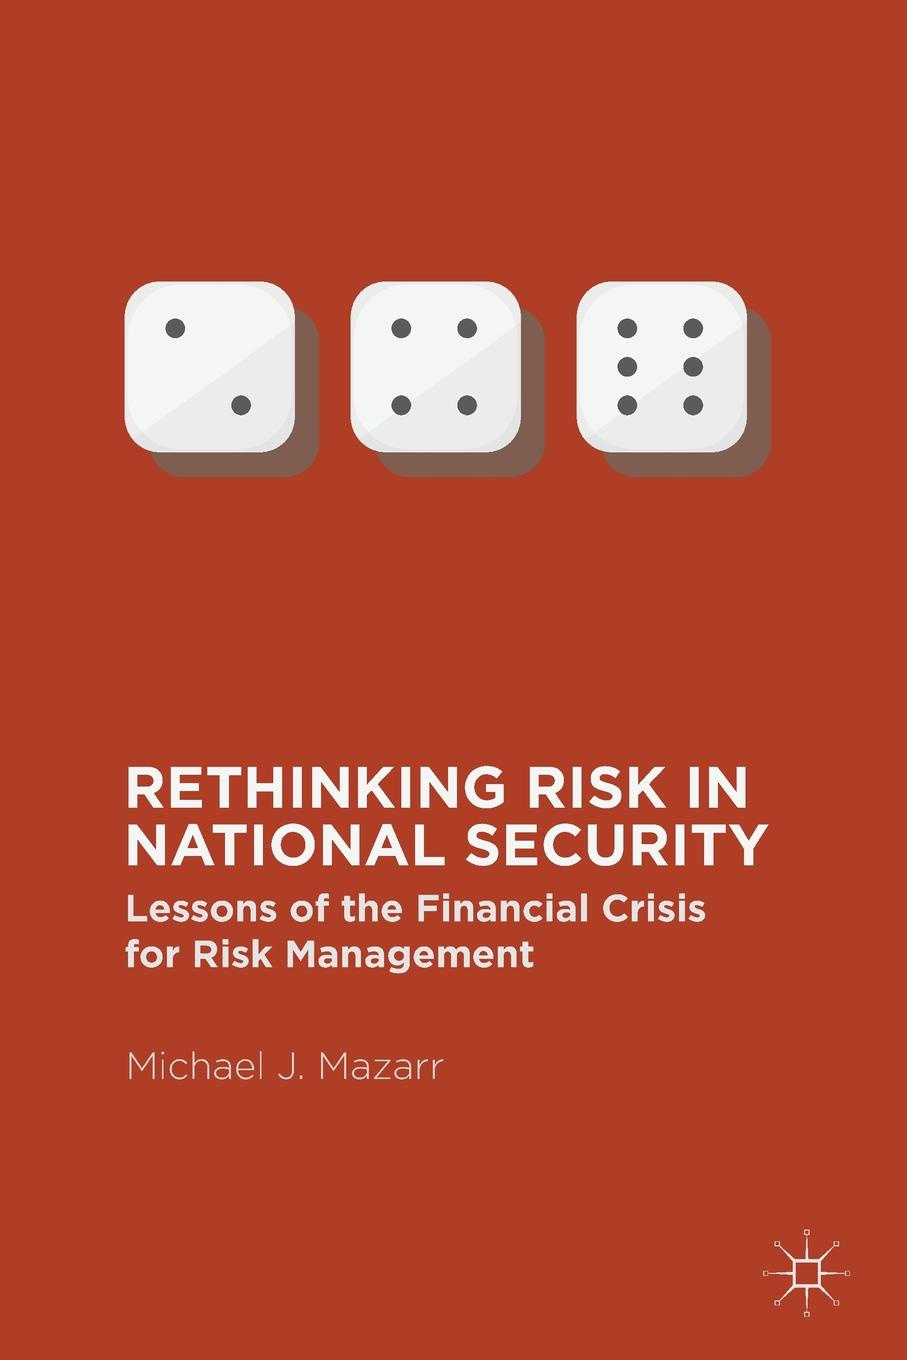 цены Michael J. Mazarr Rethinking Risk in National Security. Lessons of the Financial Crisis for Risk Management